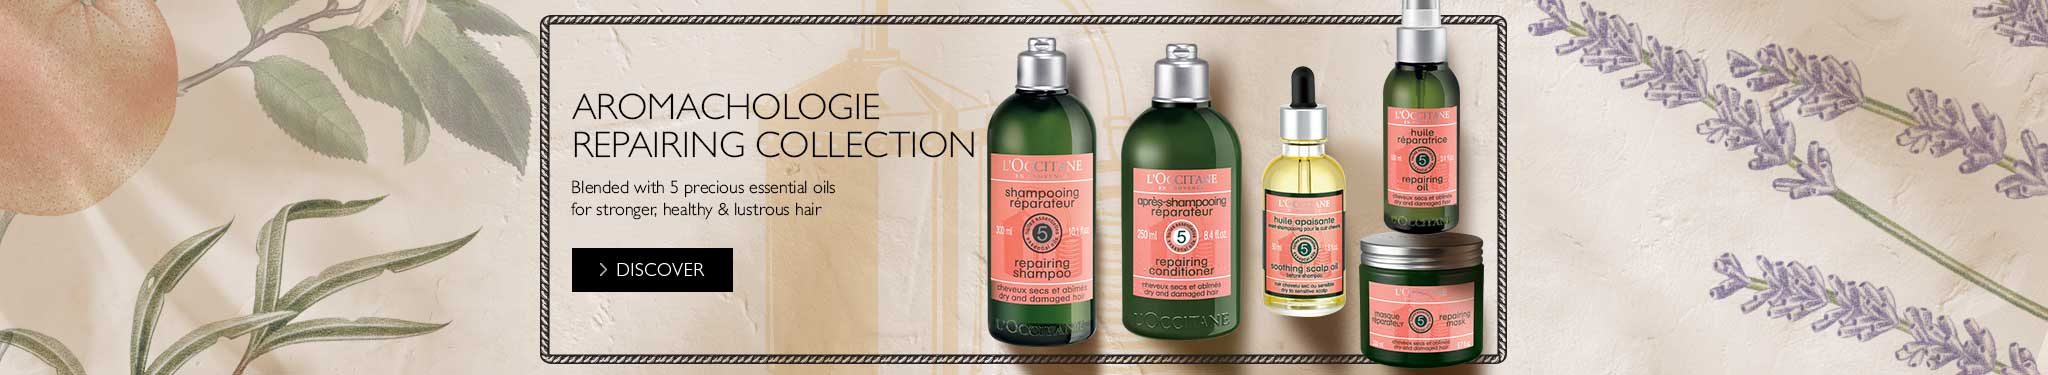 AROMACHOLOGIE hiRepair Collection